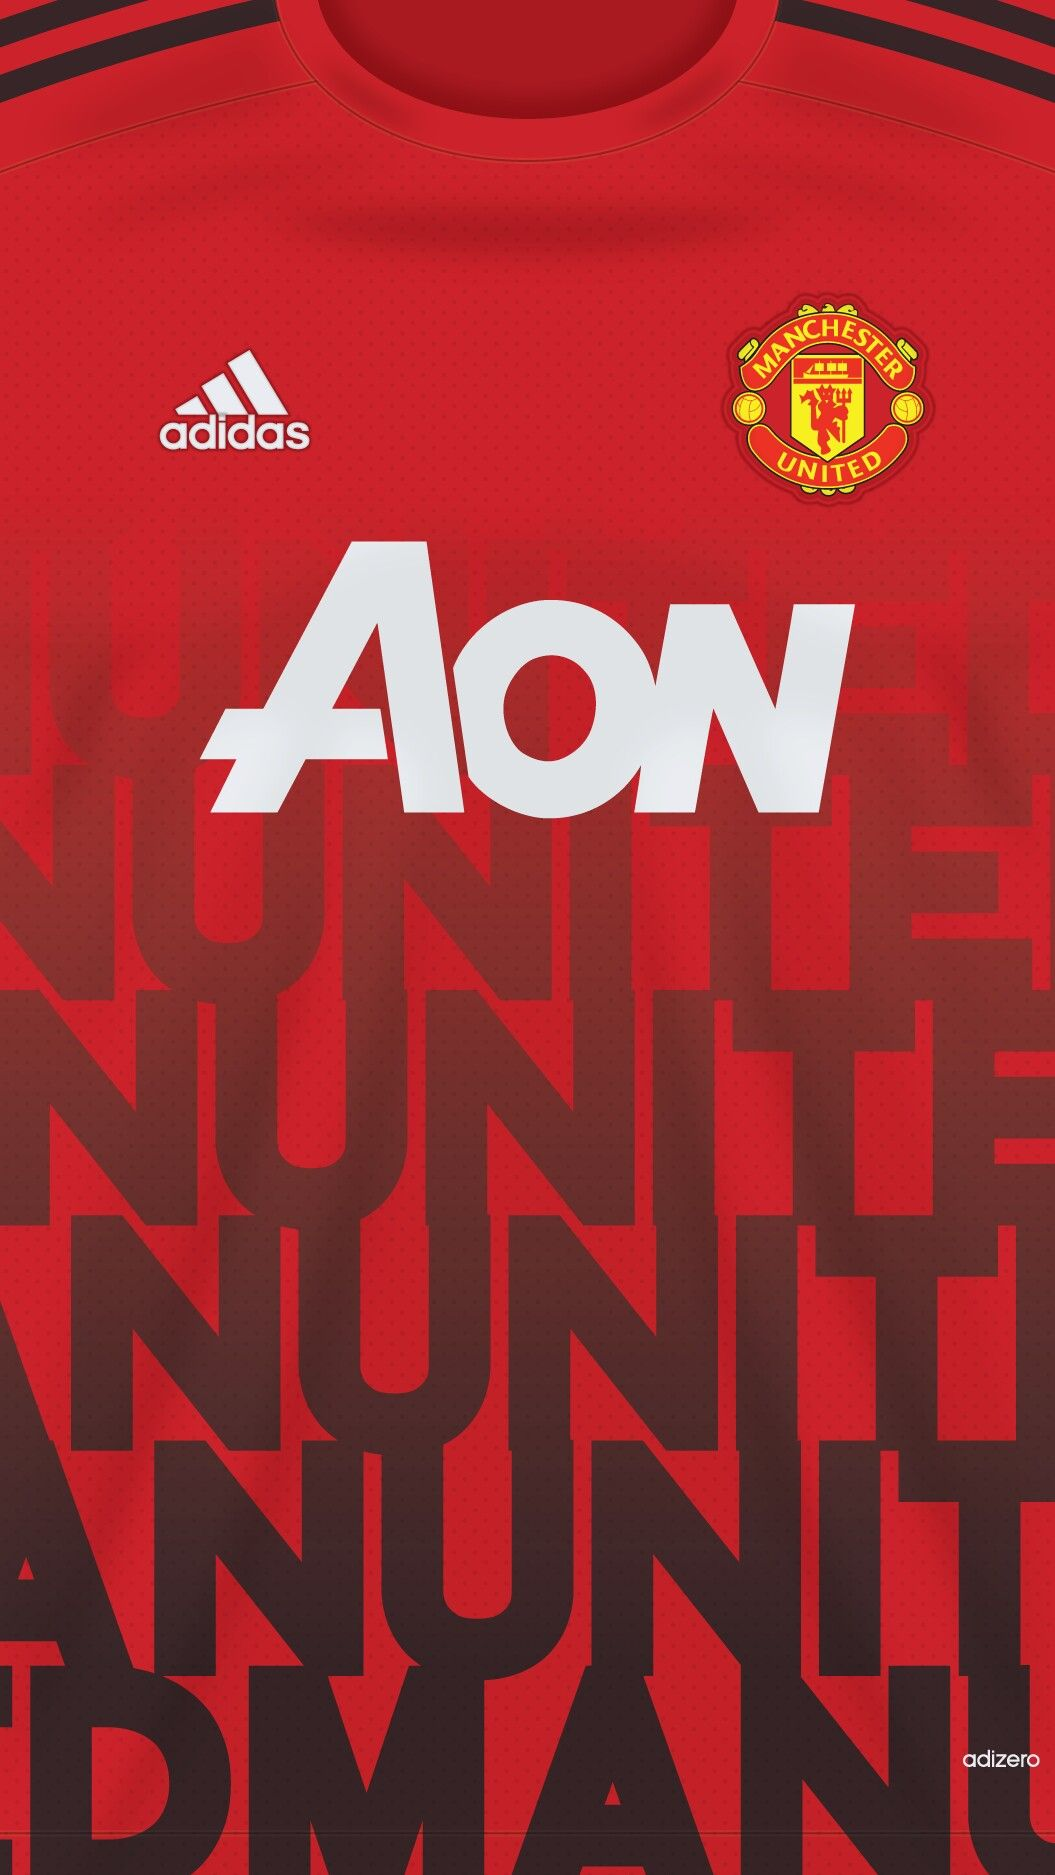 Manchester United 16 17 Pre Match Kit Manchester United Wallpaper Manchester United Football Manchester United